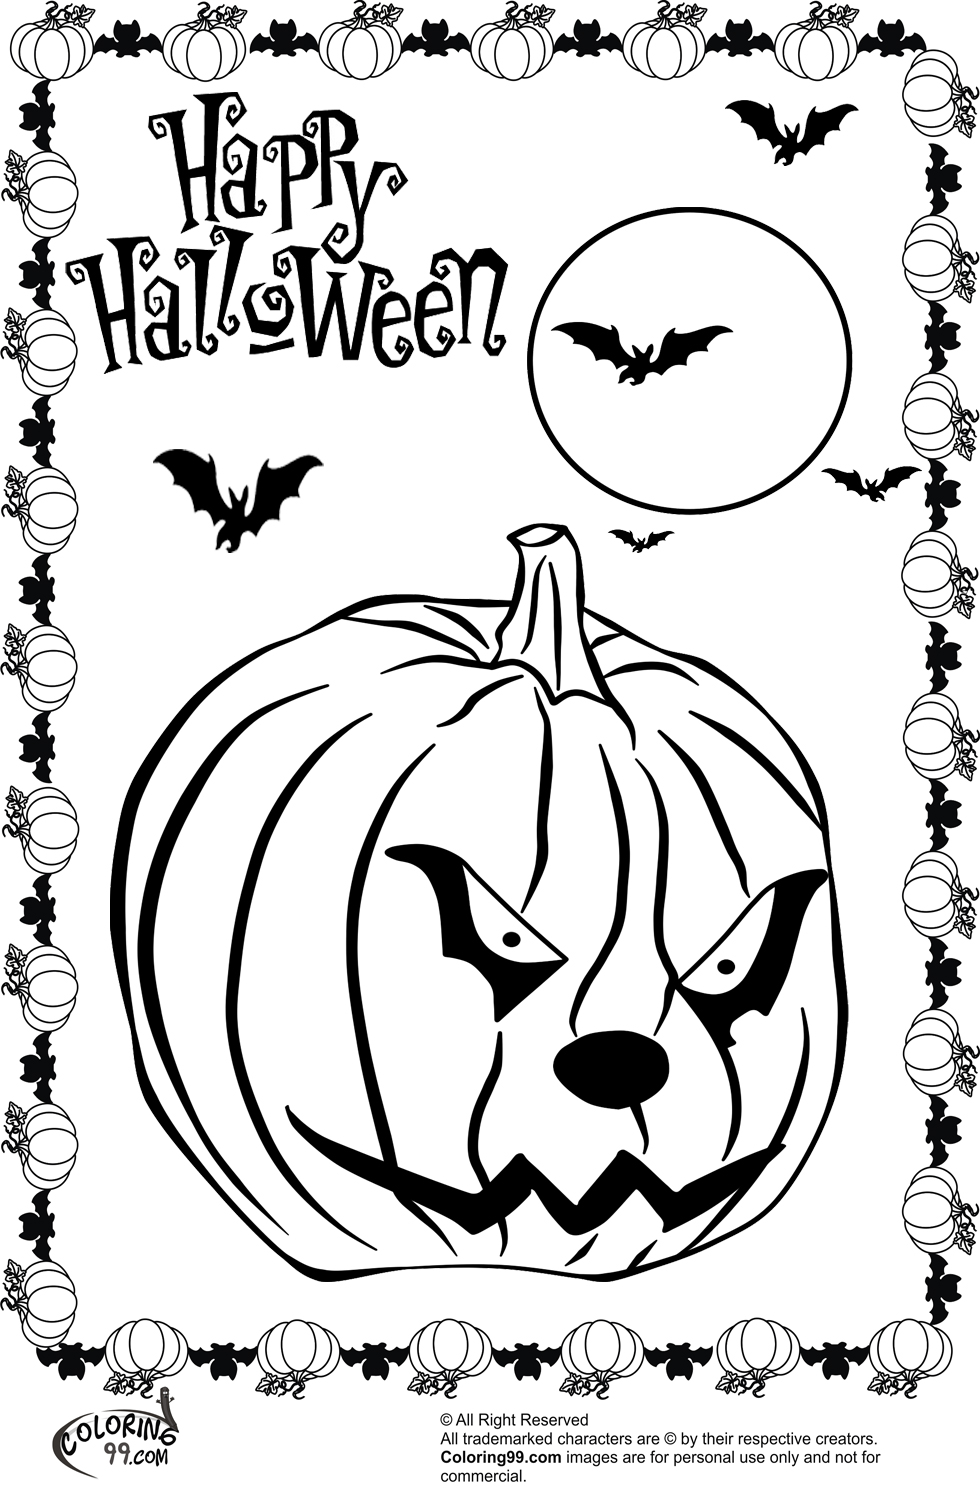 coloring sheets for halloween free printable halloween coloring pages for kids coloring halloween for sheets